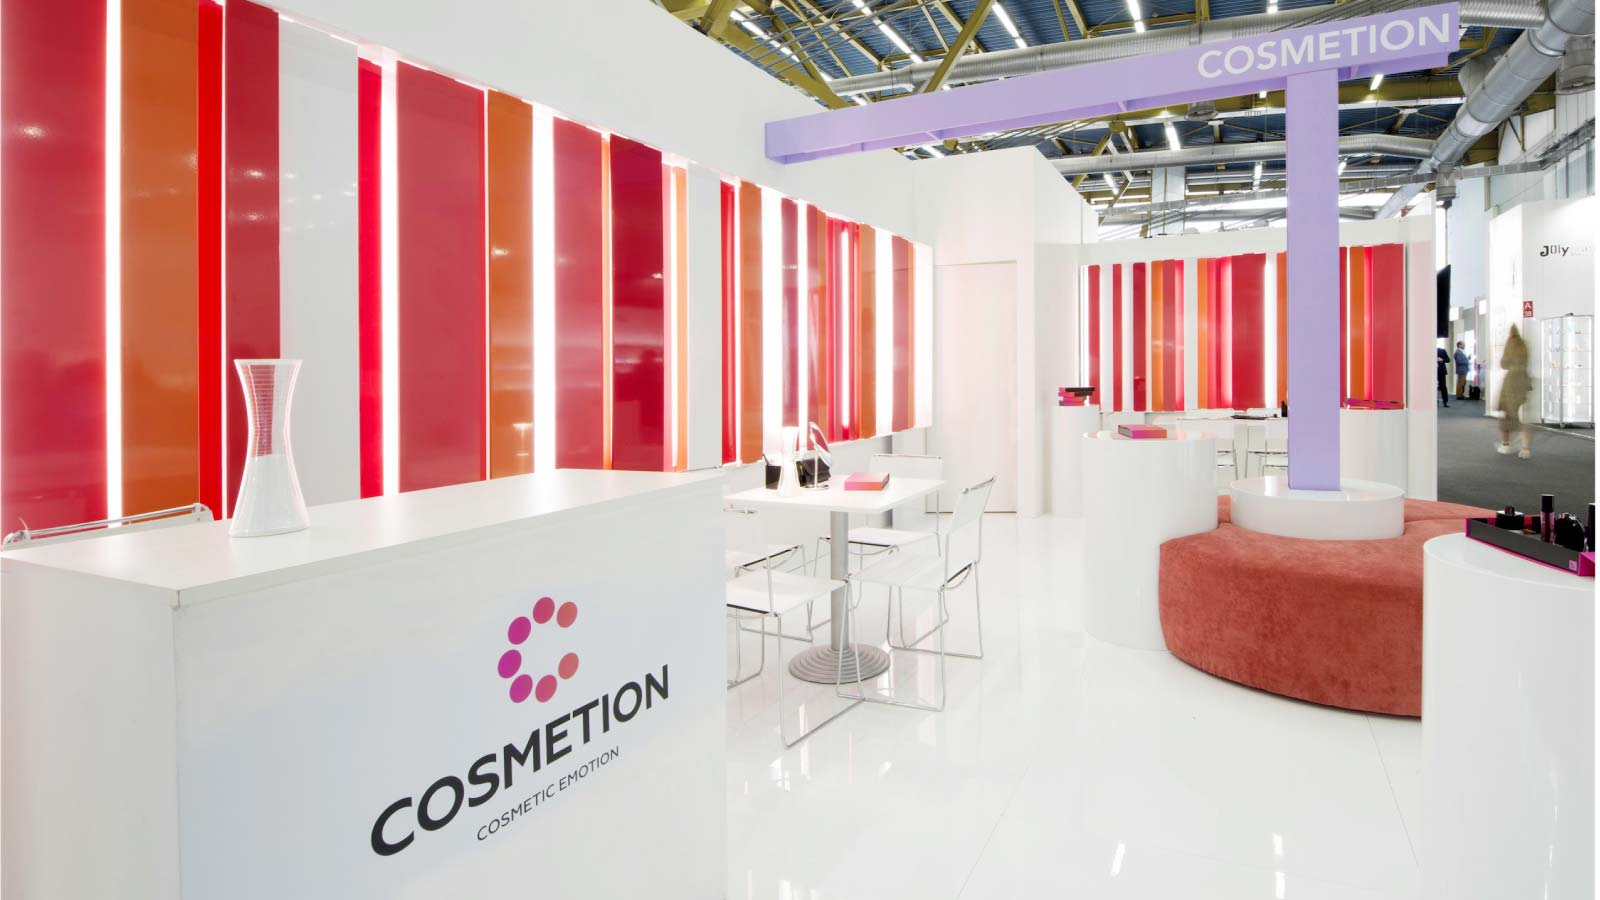 Studio Magenis Professionisti Associati - Cosmetion Stand